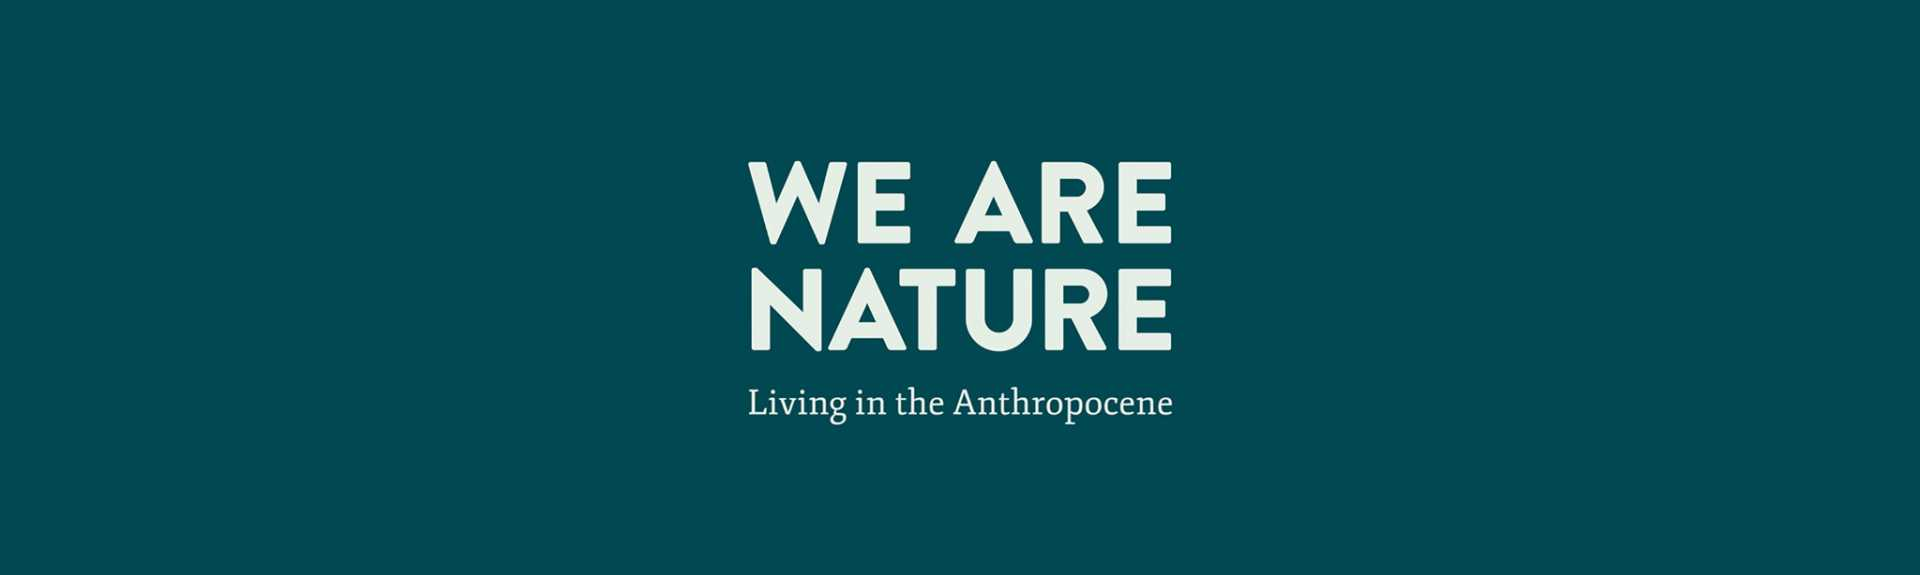 We Are Nature: Living in the Anthropocene